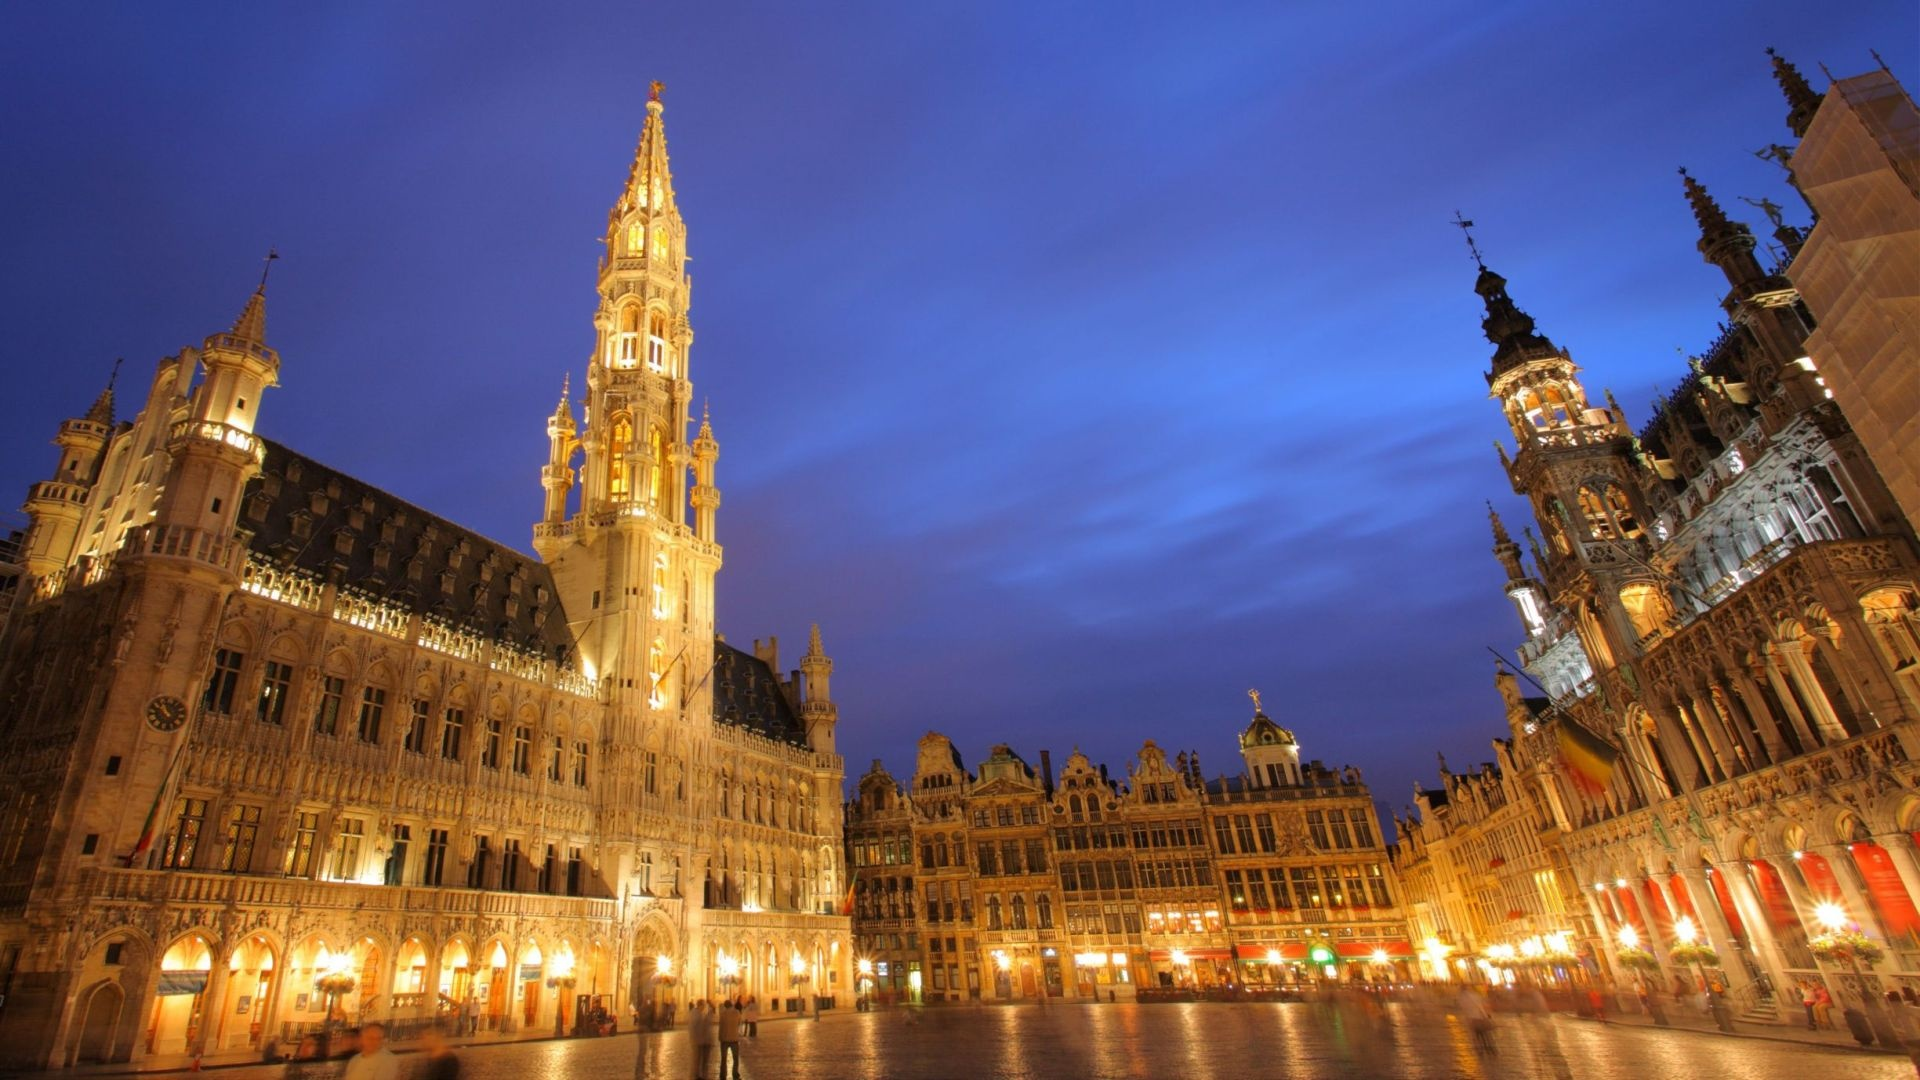 Grand place brussels wallpapers 1920x1080 481735 for Brussels piscine